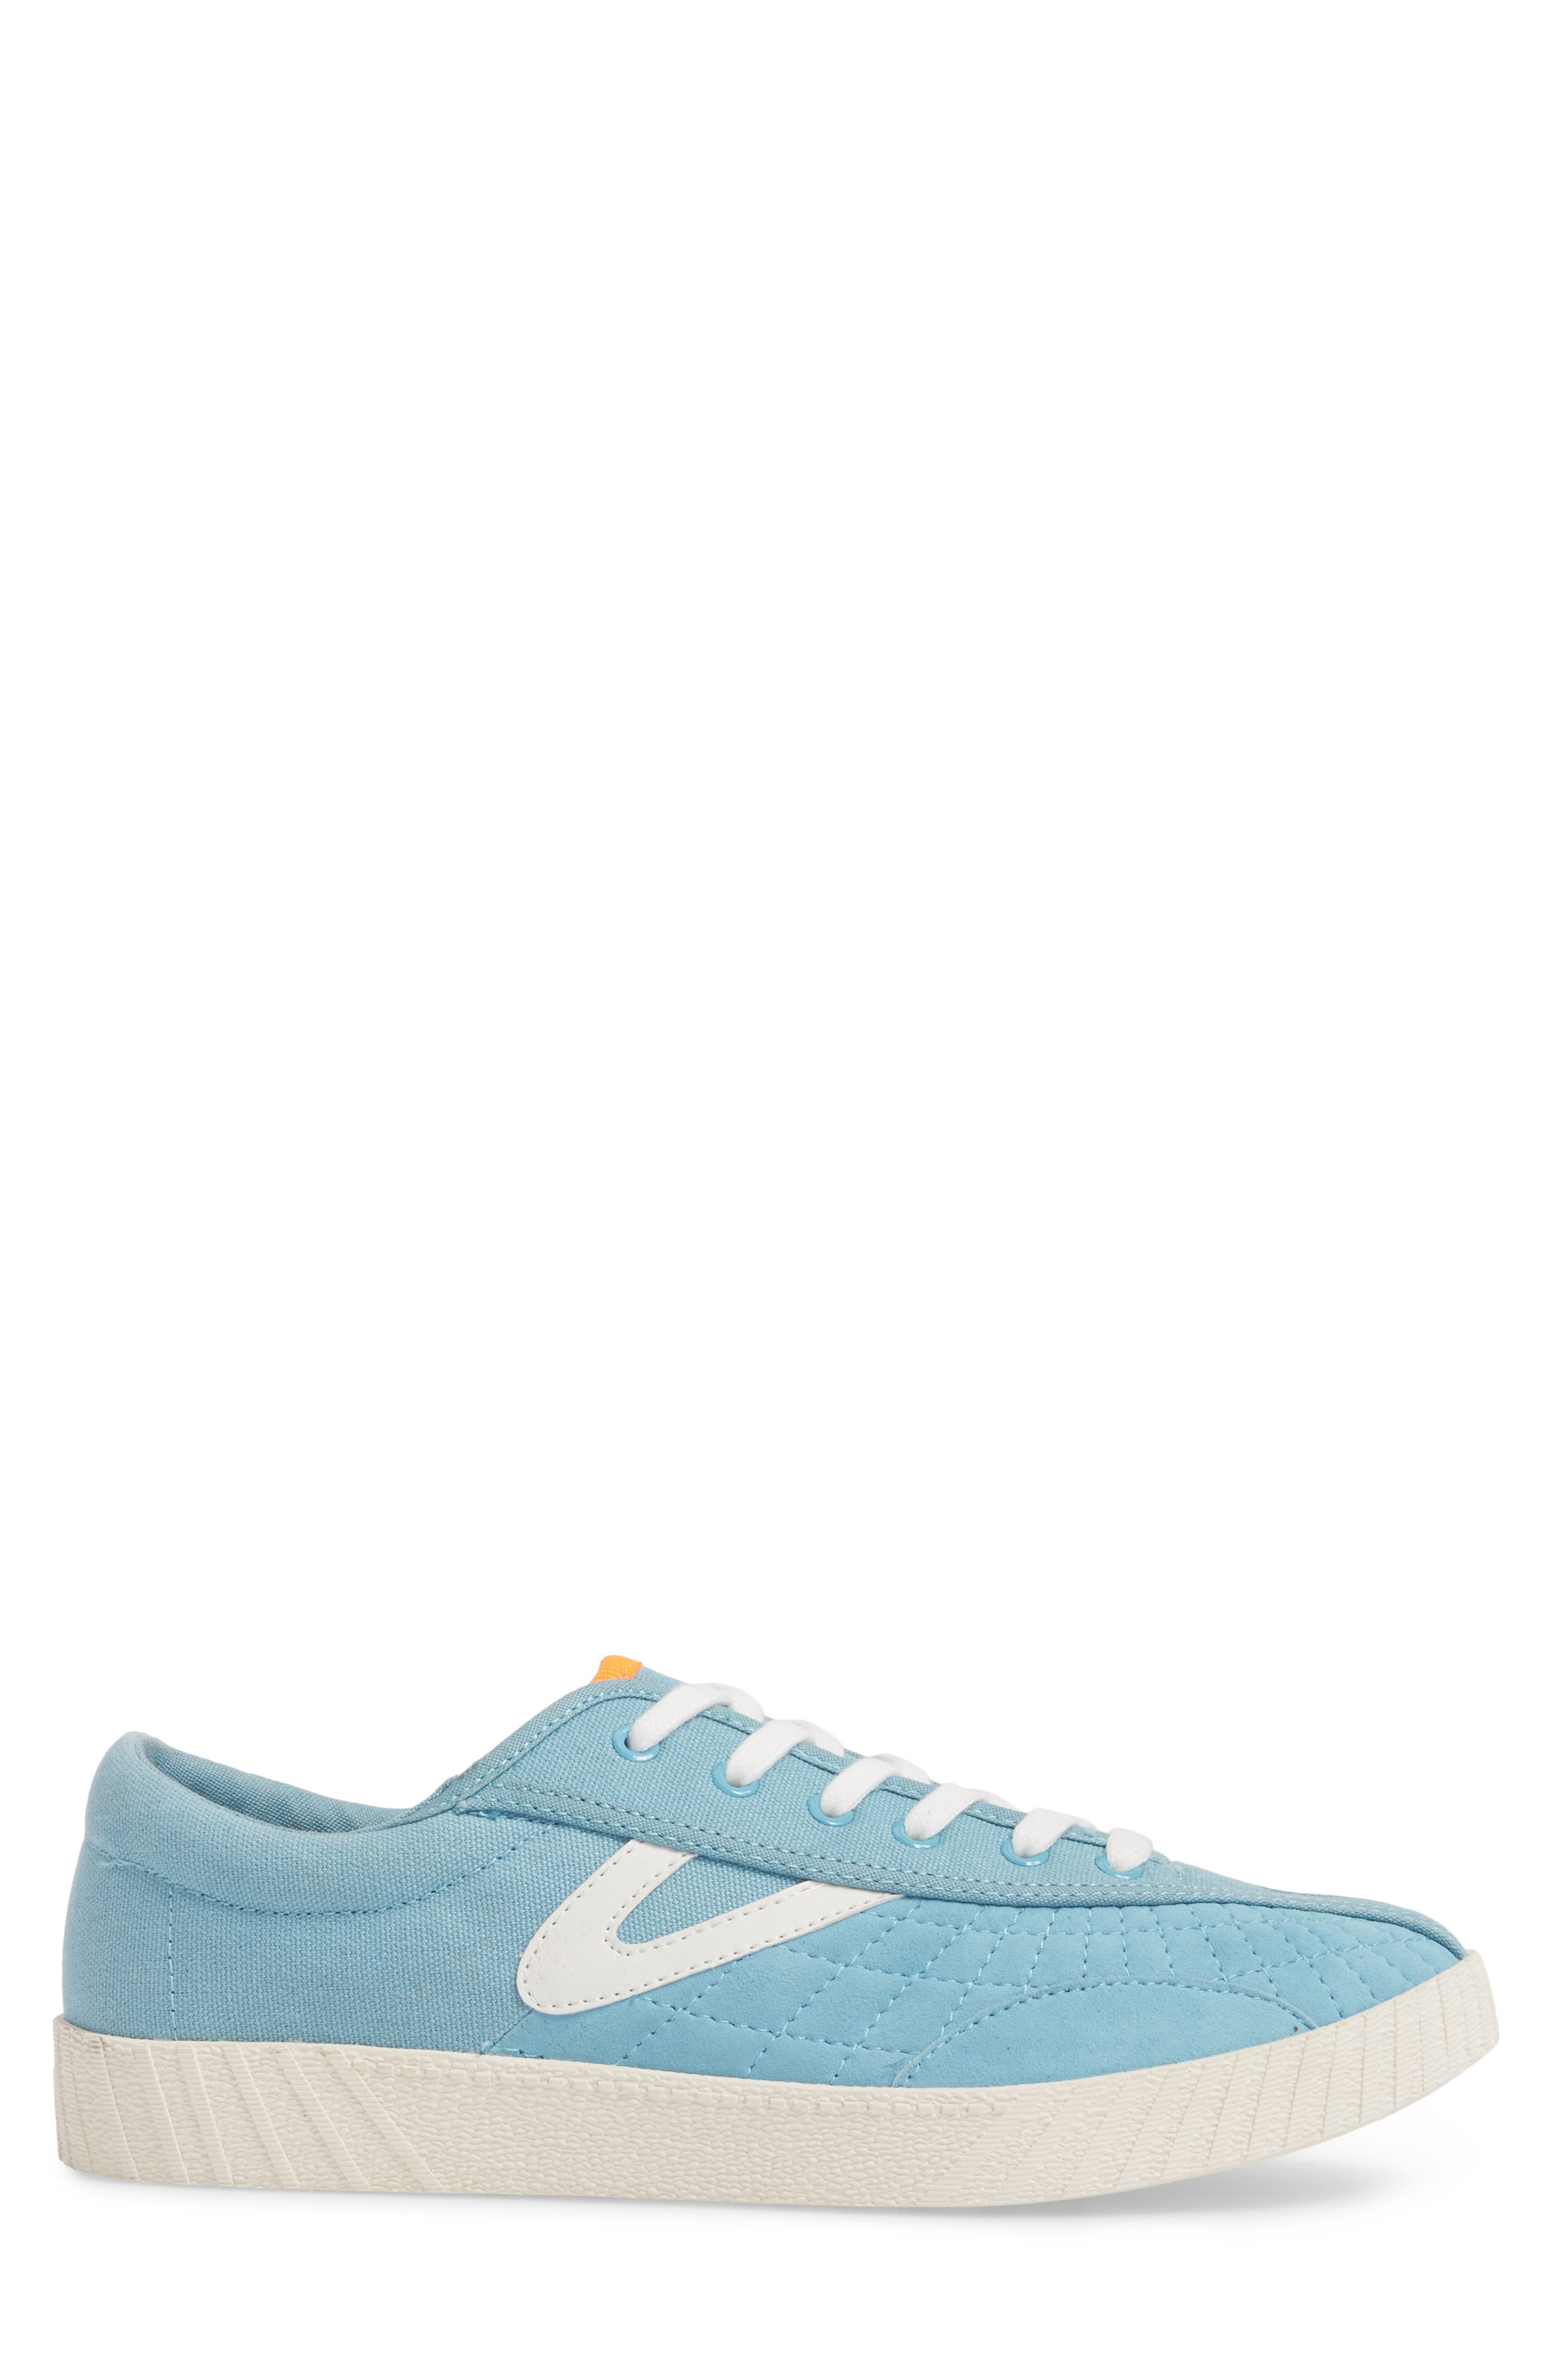 Andre 3000 Nylite Low Top Sneaker,                             Alternate thumbnail 3, color,                             BABY BLUE CANVAS